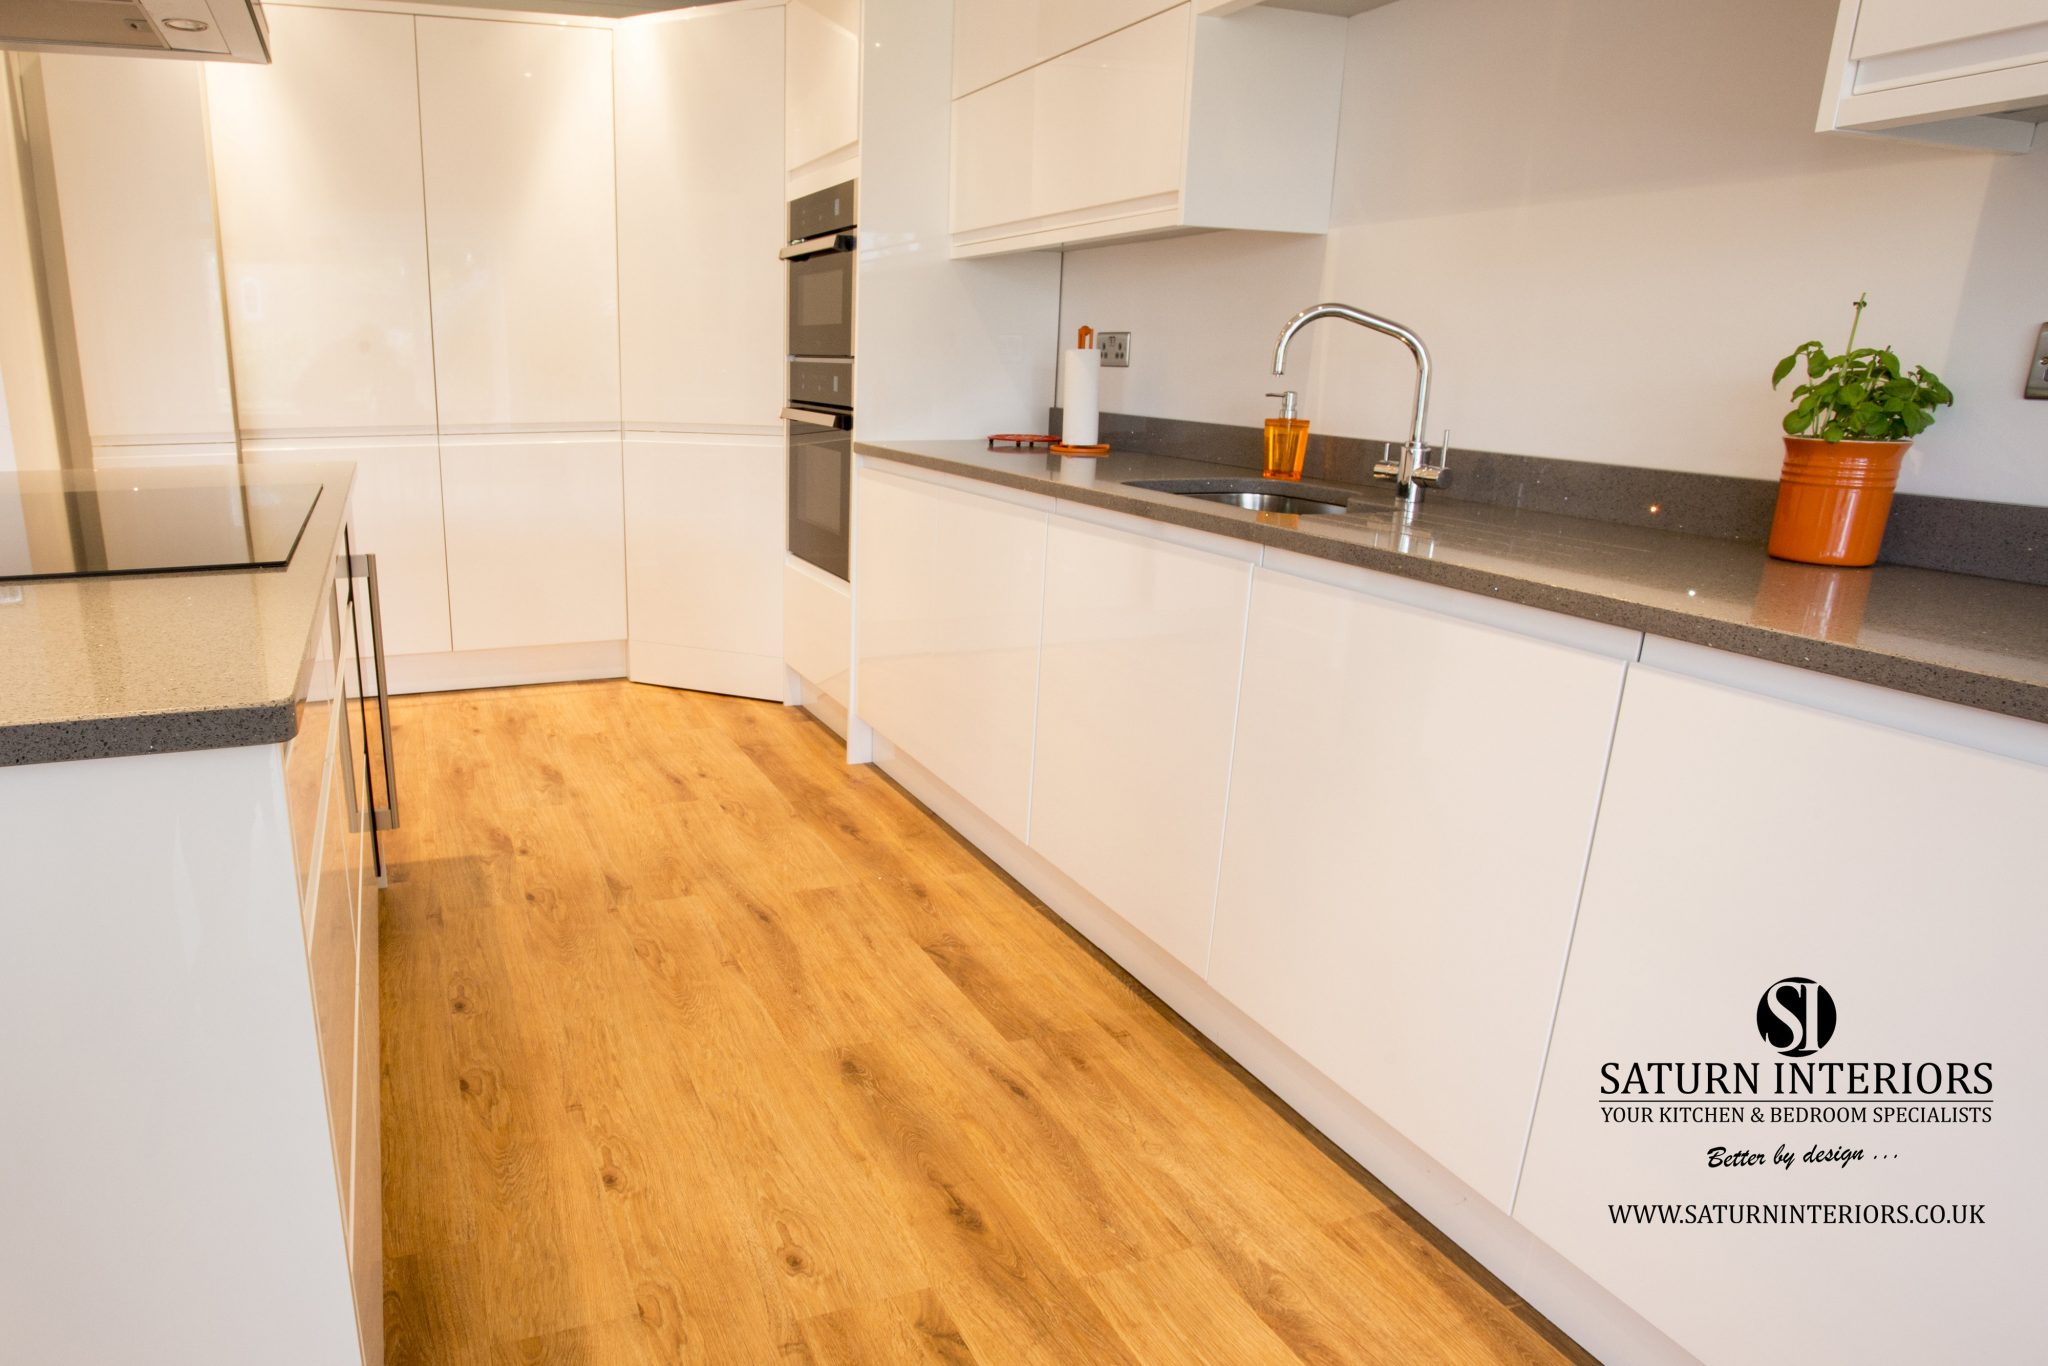 image of white kitchen units with quartz worktop and wood floor